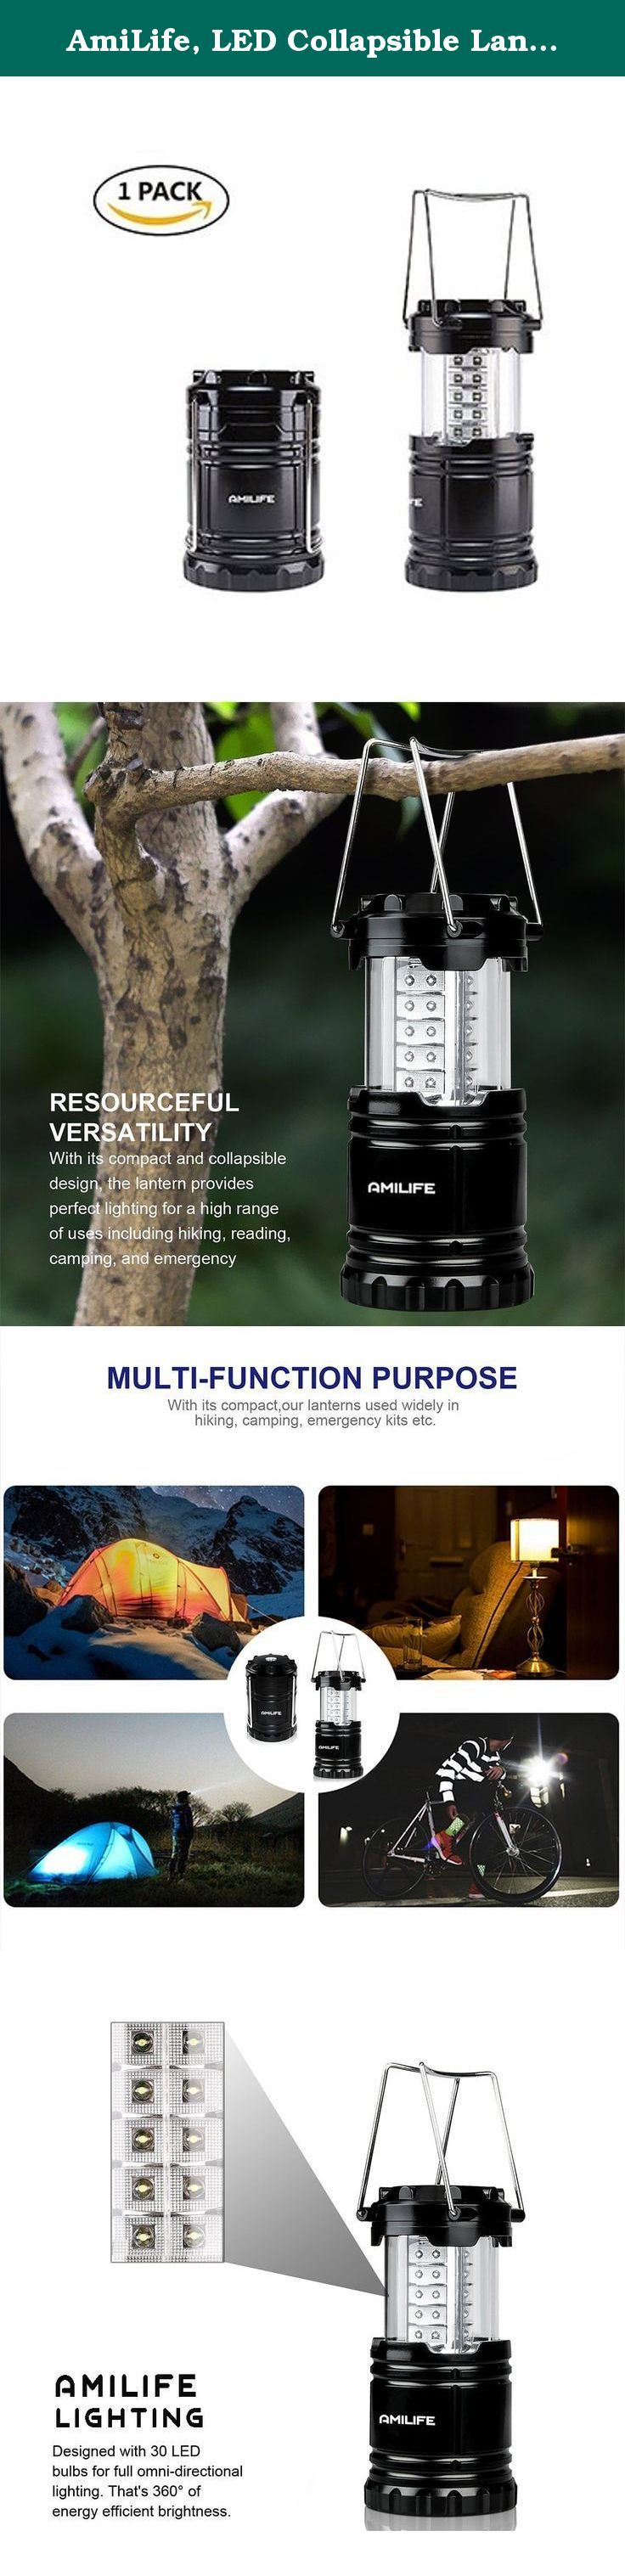 amilife led collapsible lantern flashlight lamp suitable for all outdoors activities camping